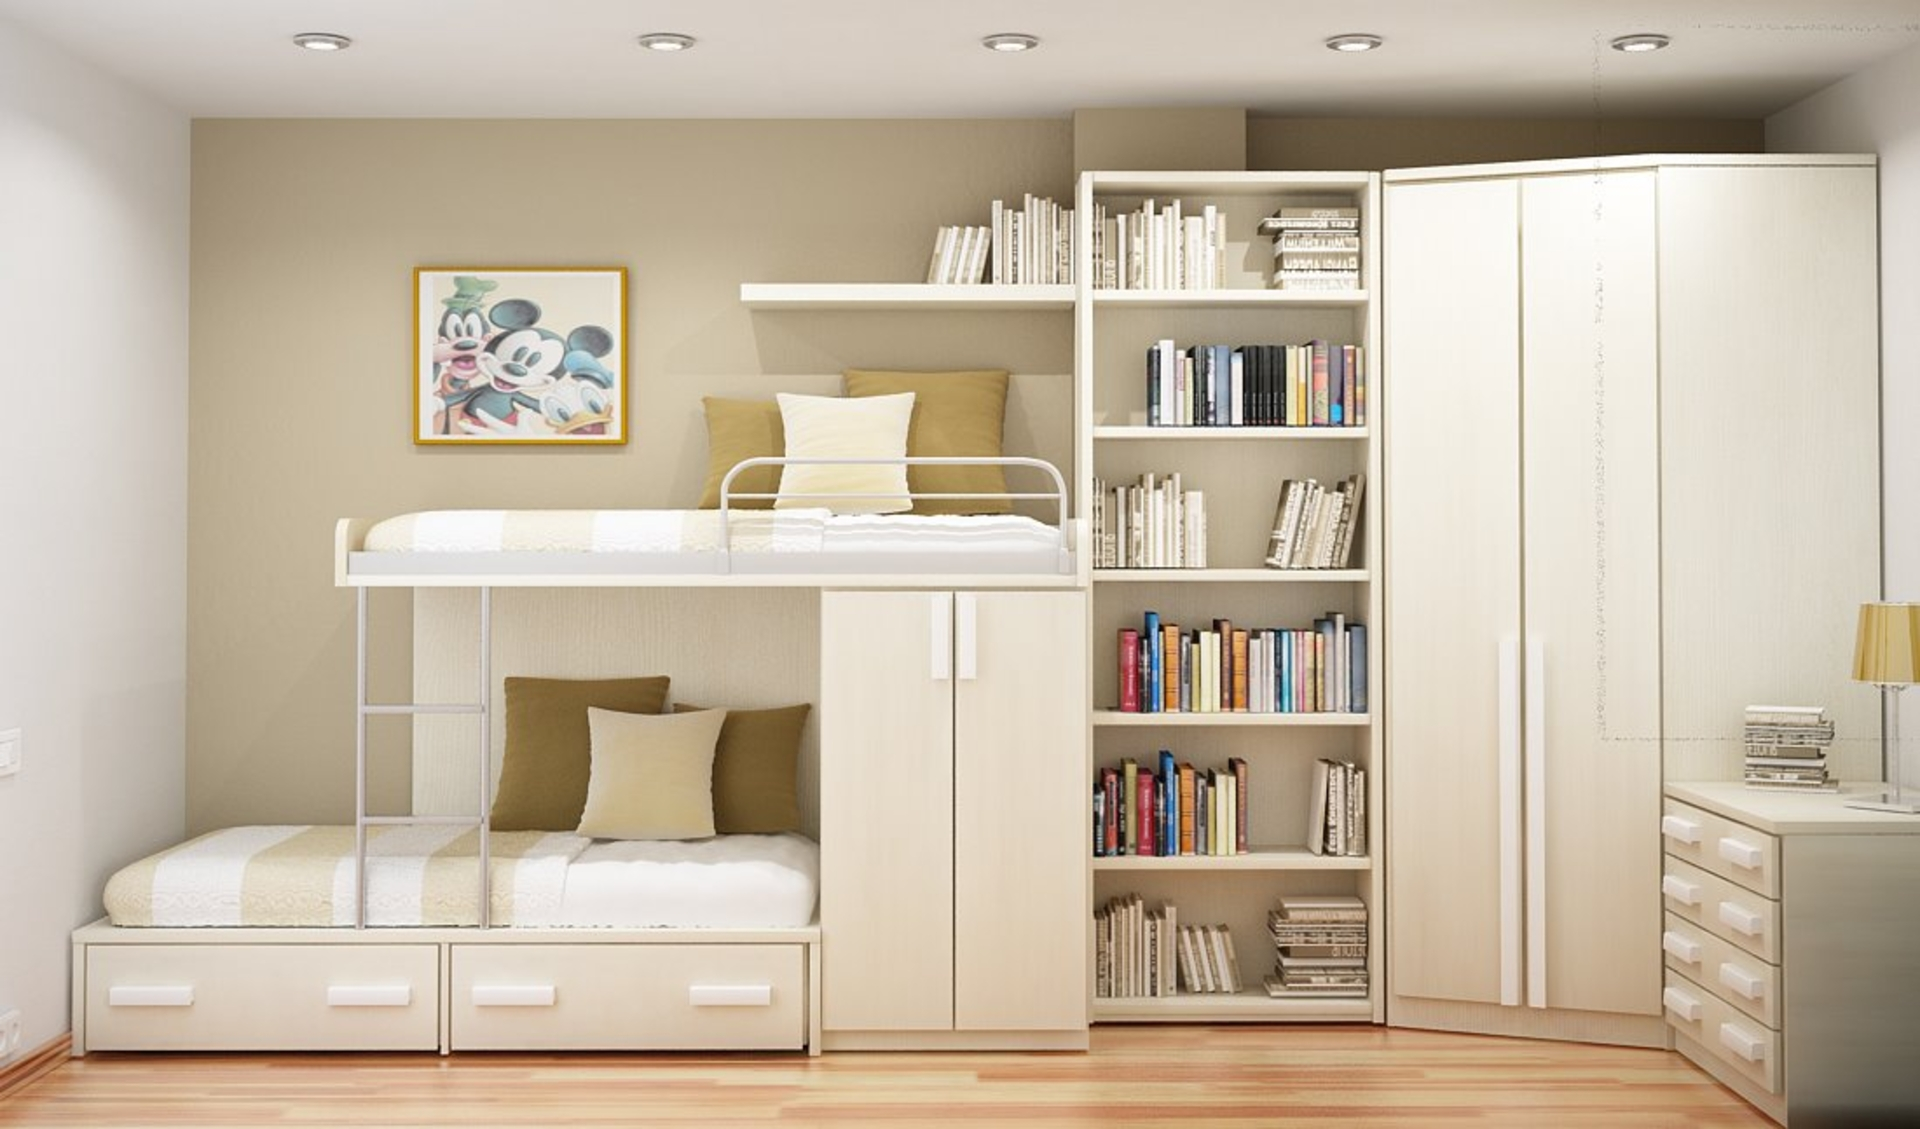 Home Office Storage Solutions Ideas. Beds Pillows Cupboard Cabinet Books  Lamp Desk Ceiling Lamps Home Part 42